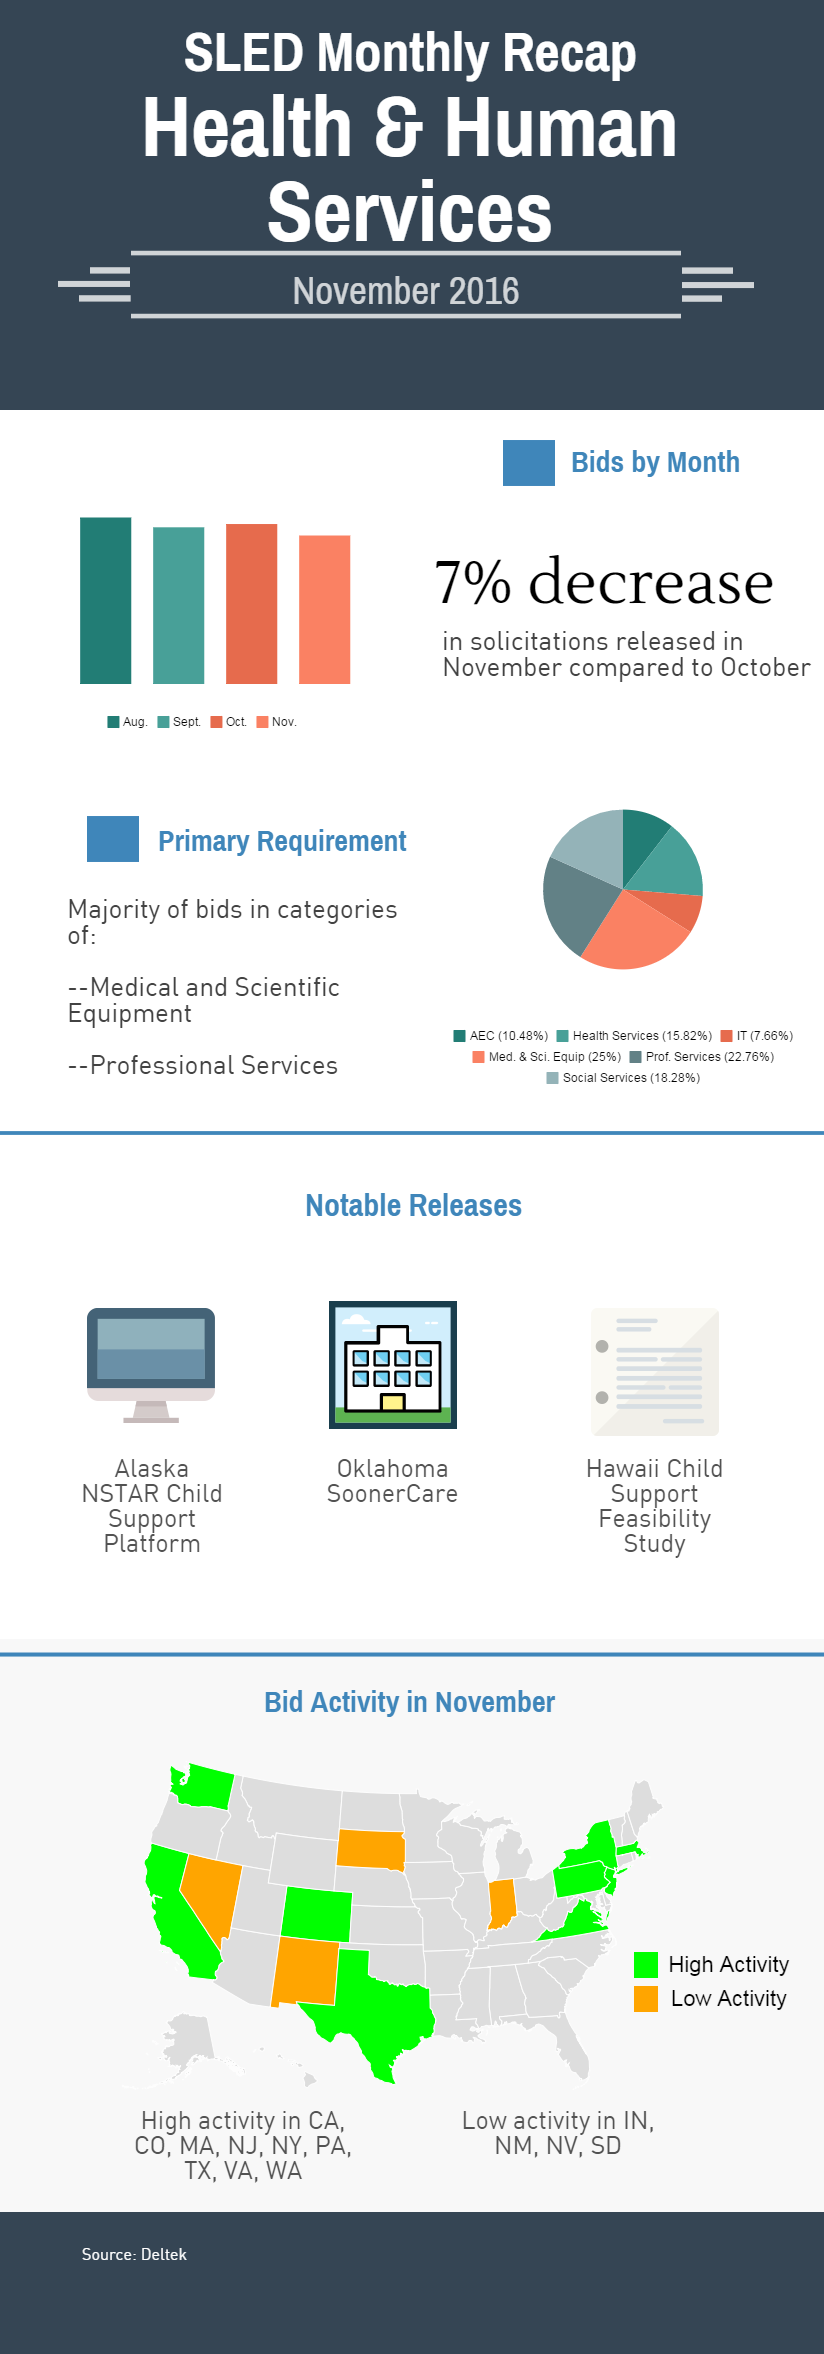 Deltek Pulse: Health and human services month in review, November 2016